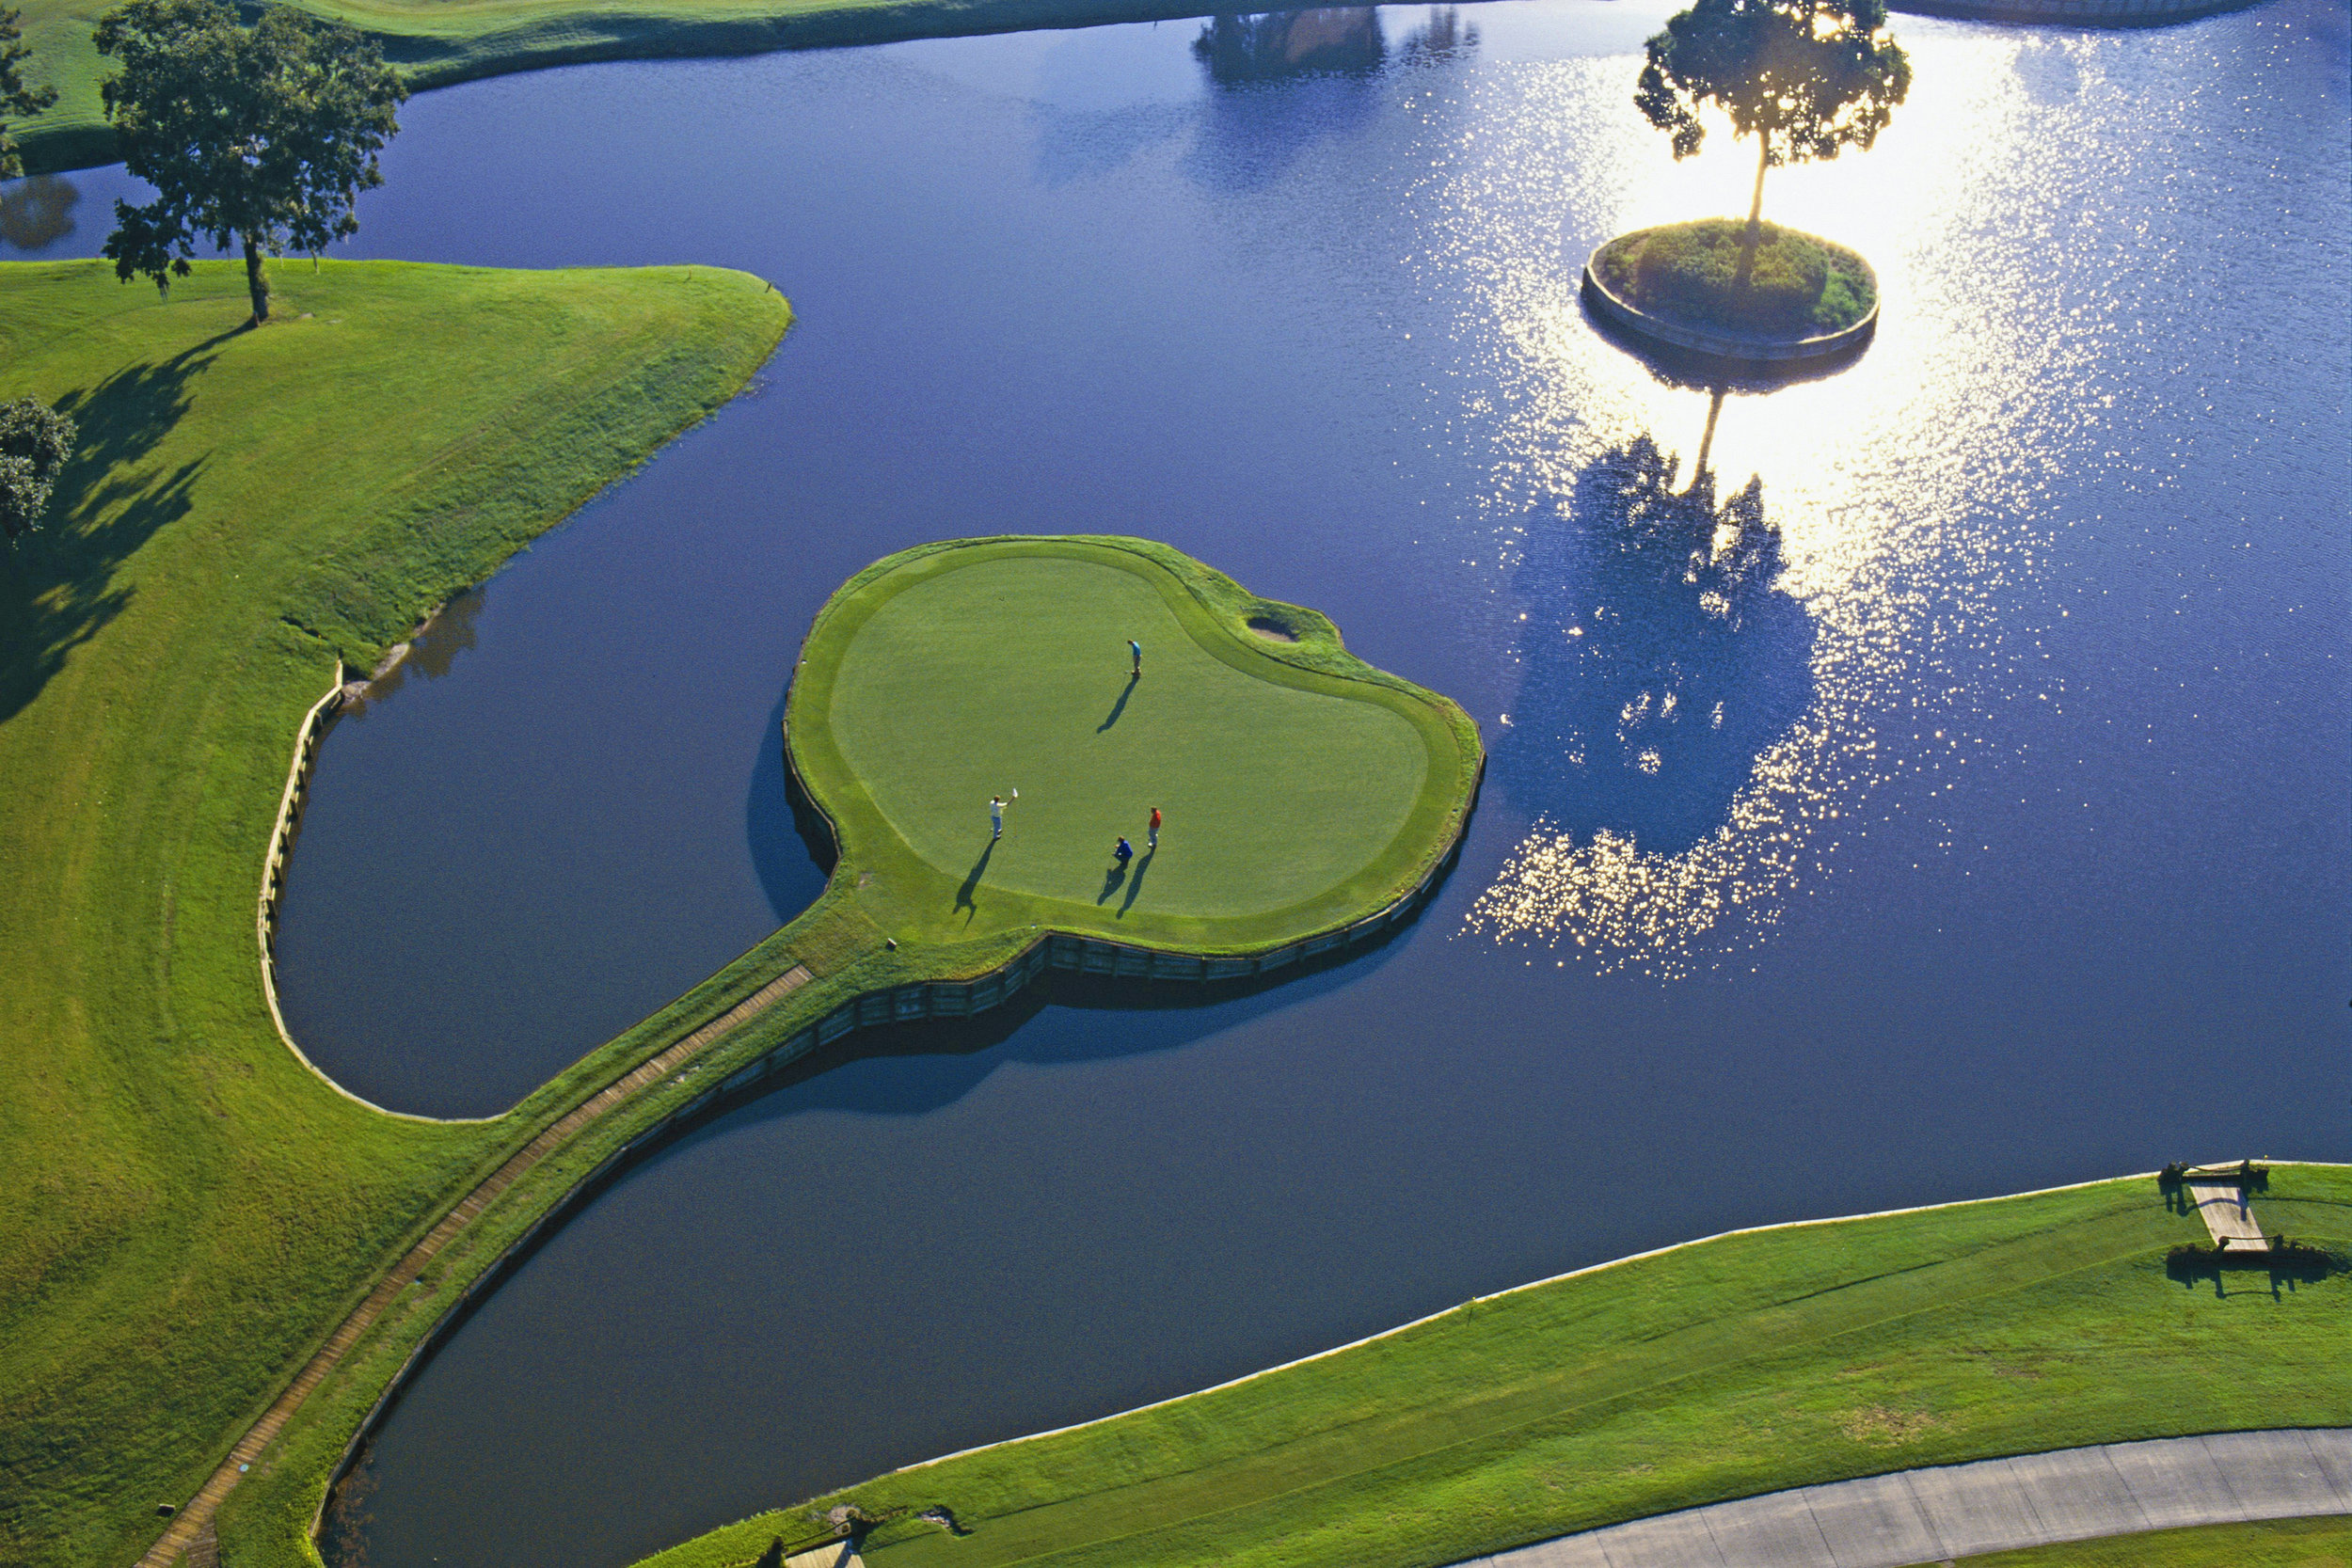 The iconic 17th green at Sawgrass